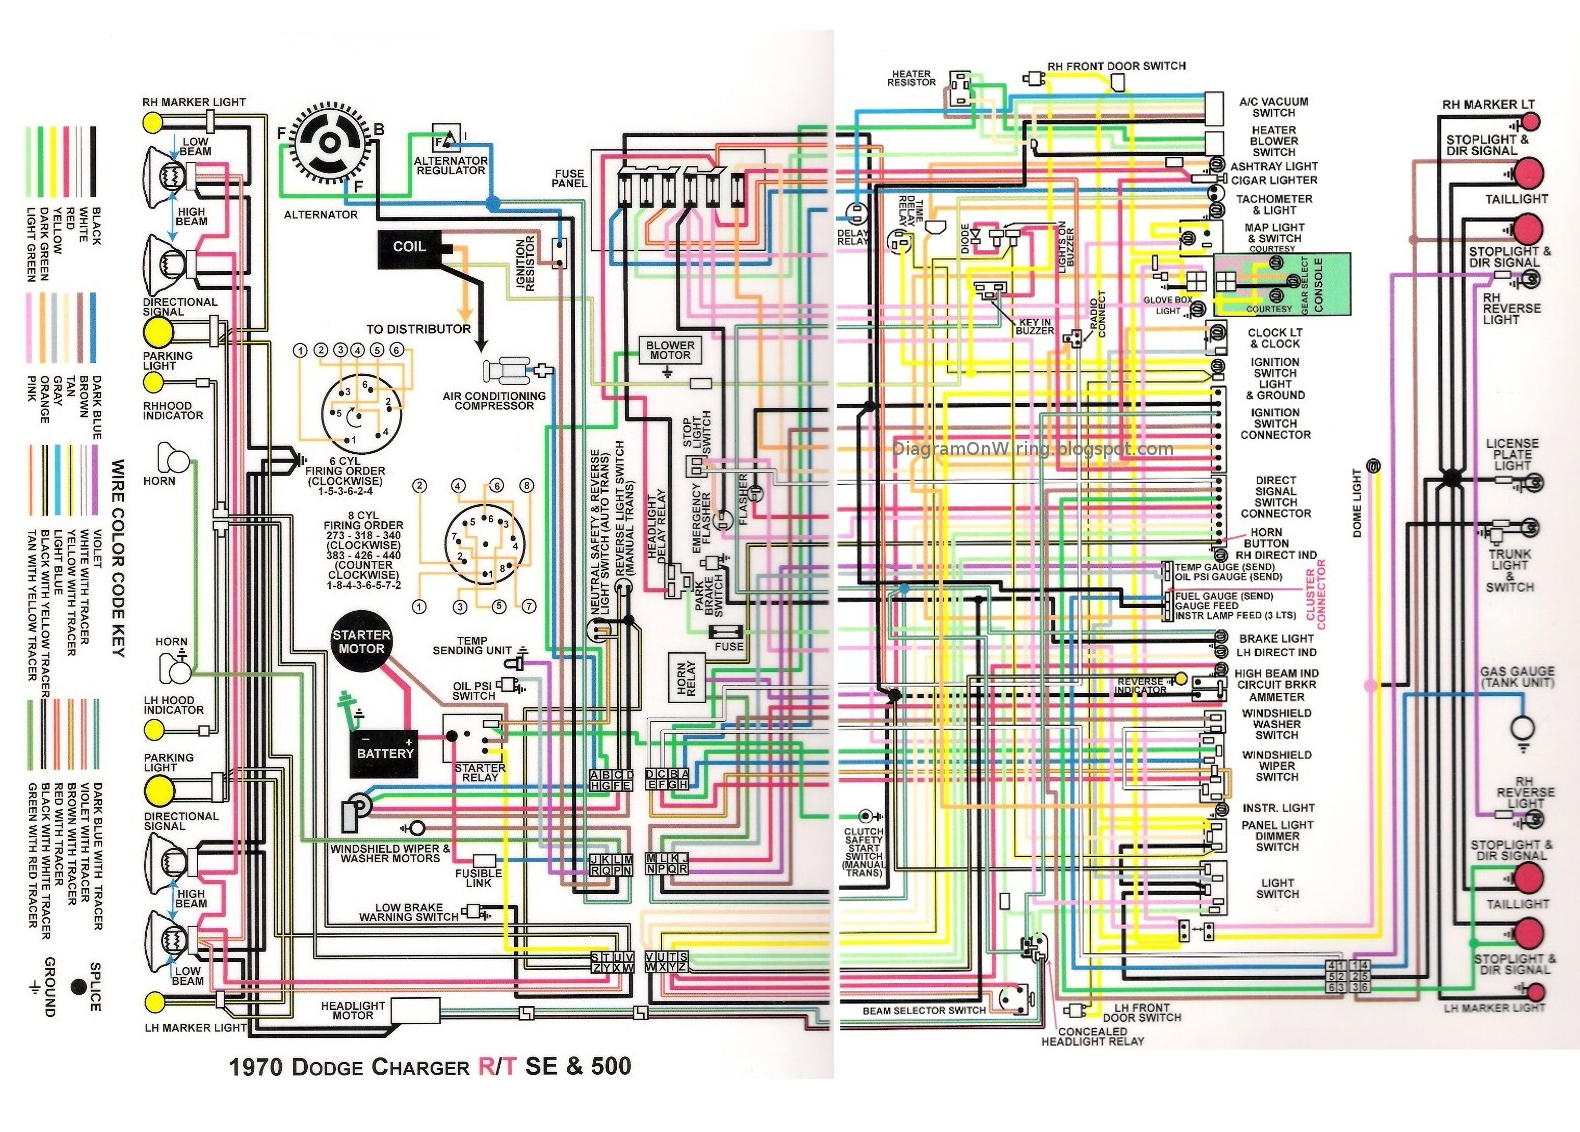 1970 mustang engine diagram wiring diagram verified  1968 galaxie 500 engine wiring diagram #9